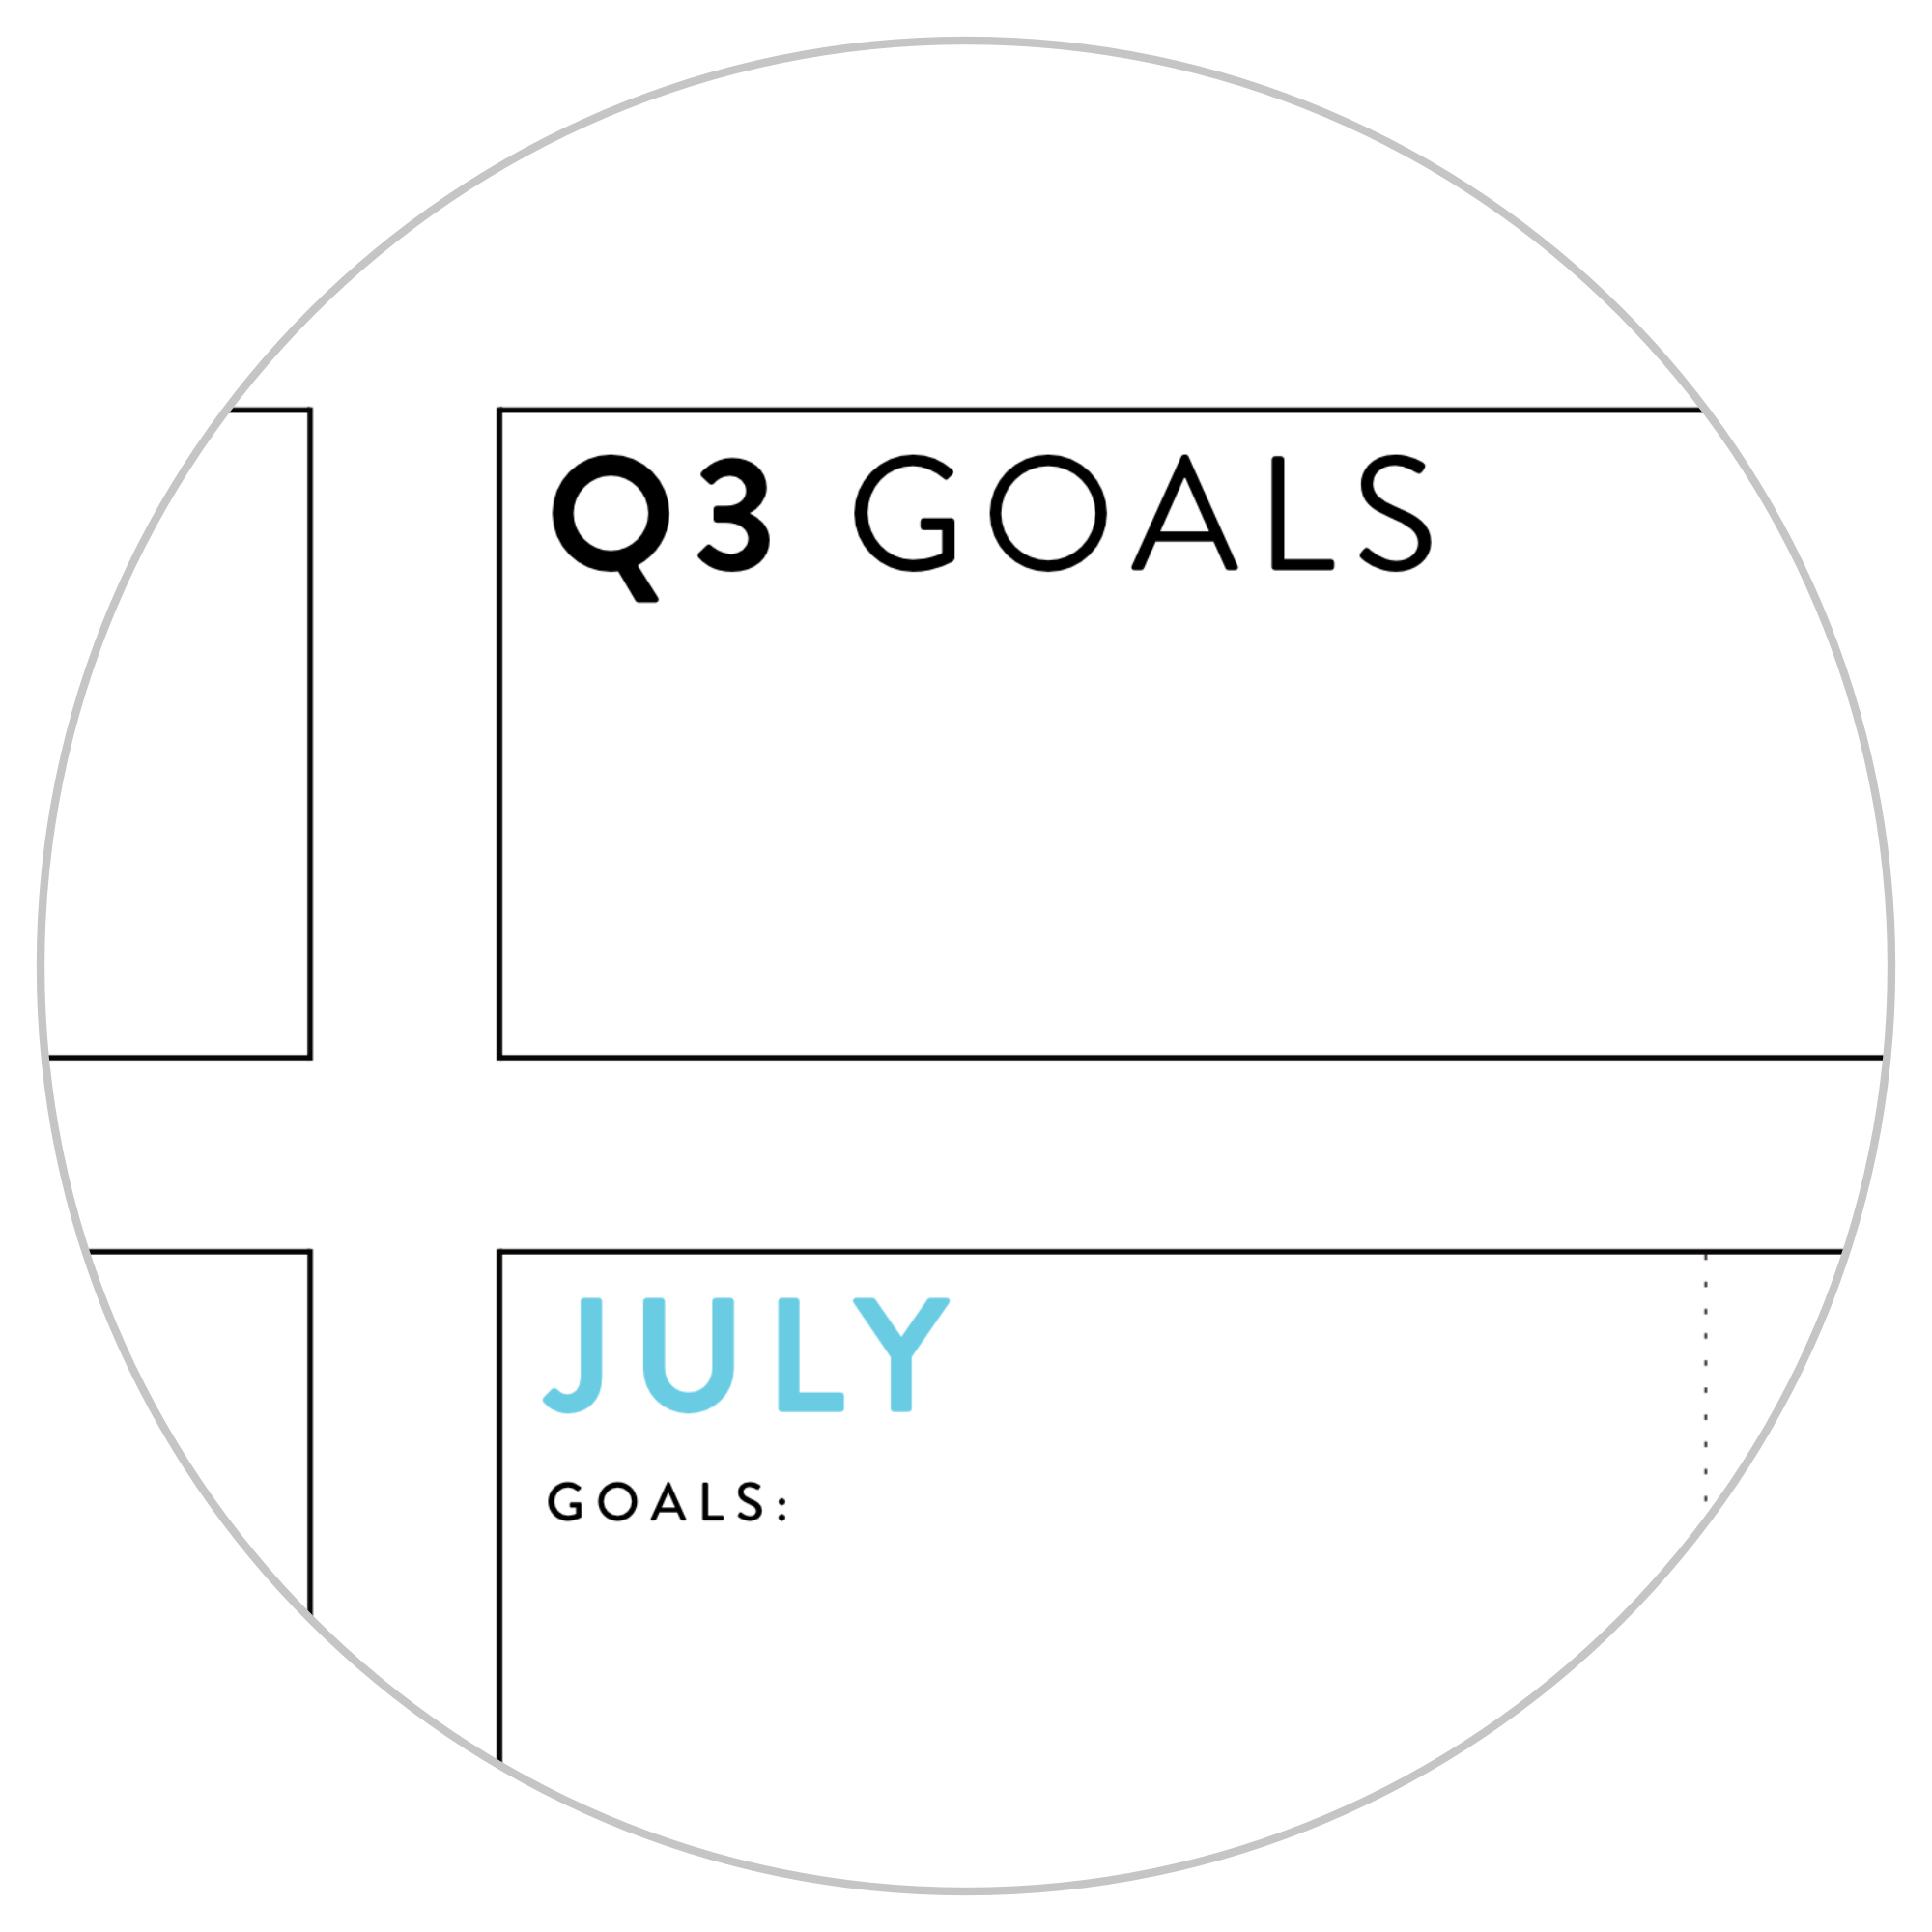 ANNUAL FOCUS AND GOALS WALL PLANNER 2021 - RAINBOW